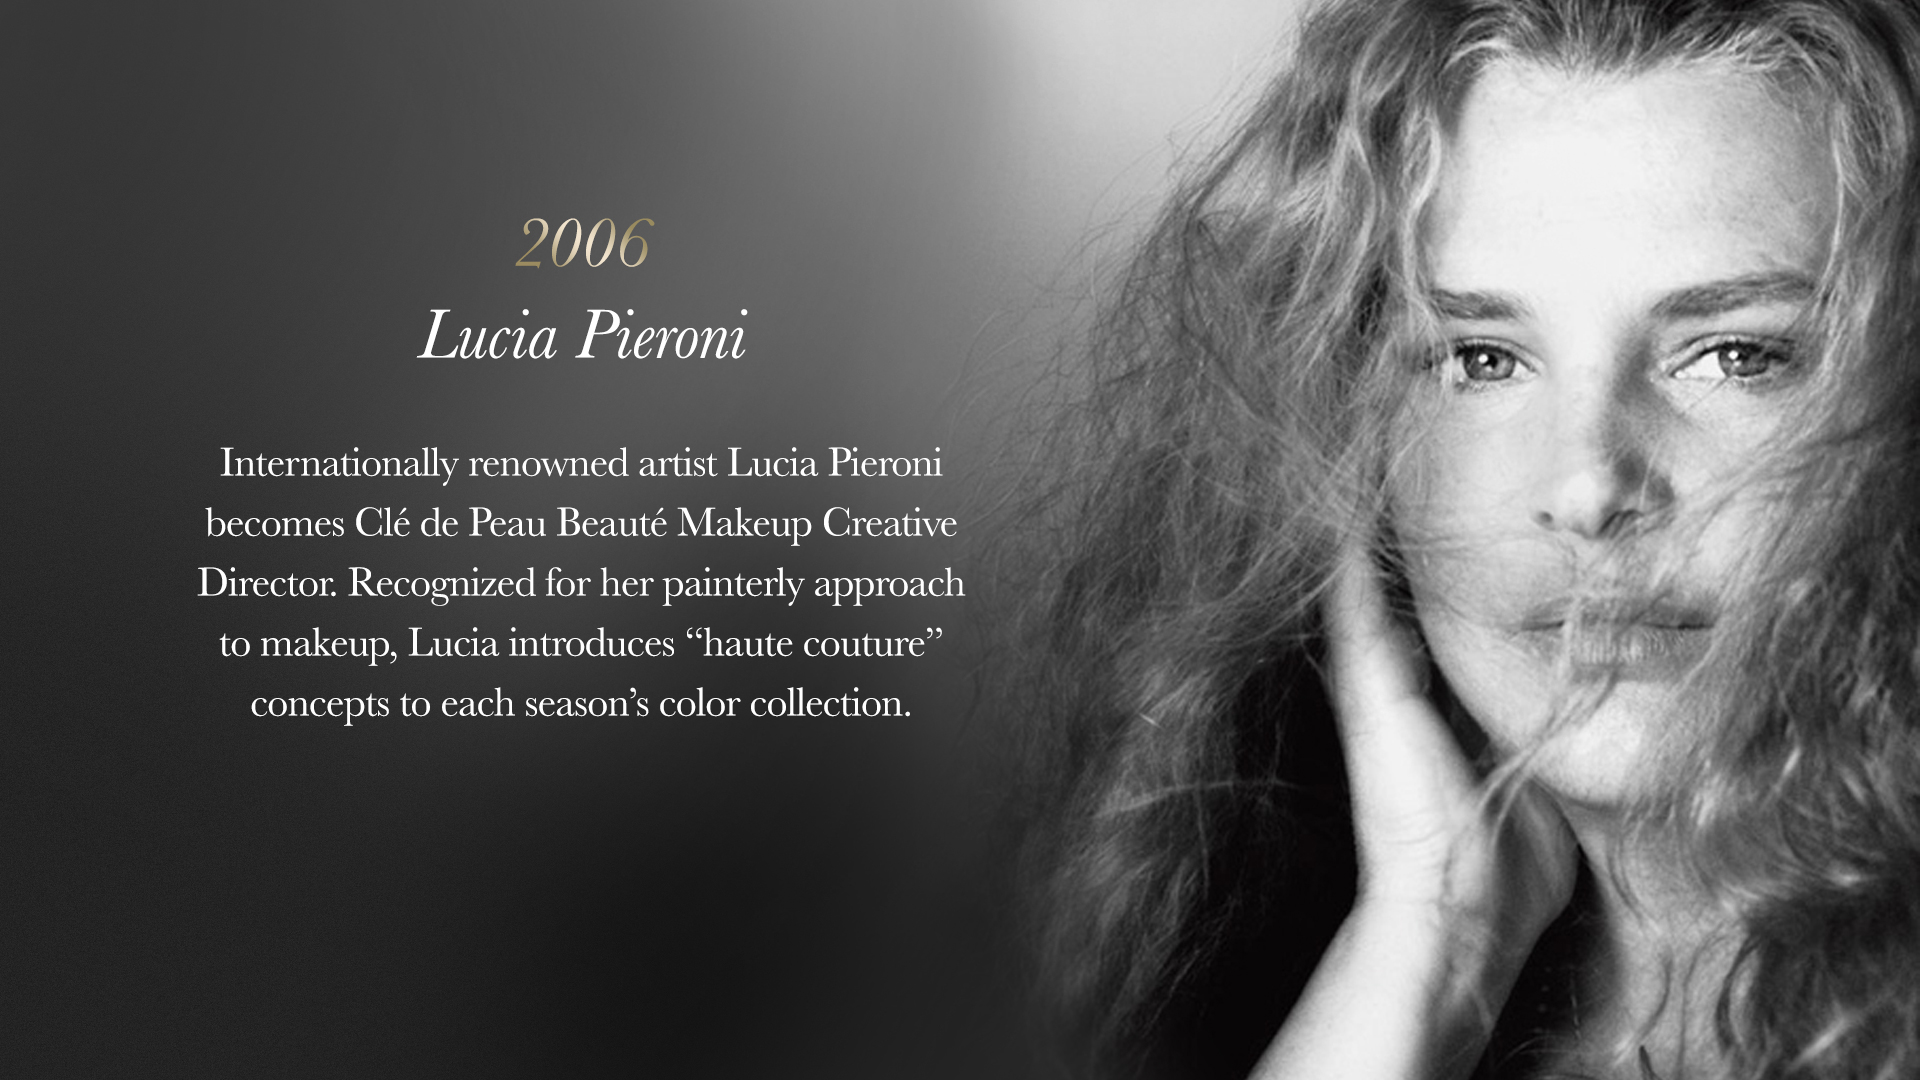 "Internationally renowned artist Lucia Pieroni becomes Clé de Peau Beauté Makeup Creative Director. Recognized for her painterly approach to makeup, Lucia introduces ""haute couture"" concepts to each season's color collection."